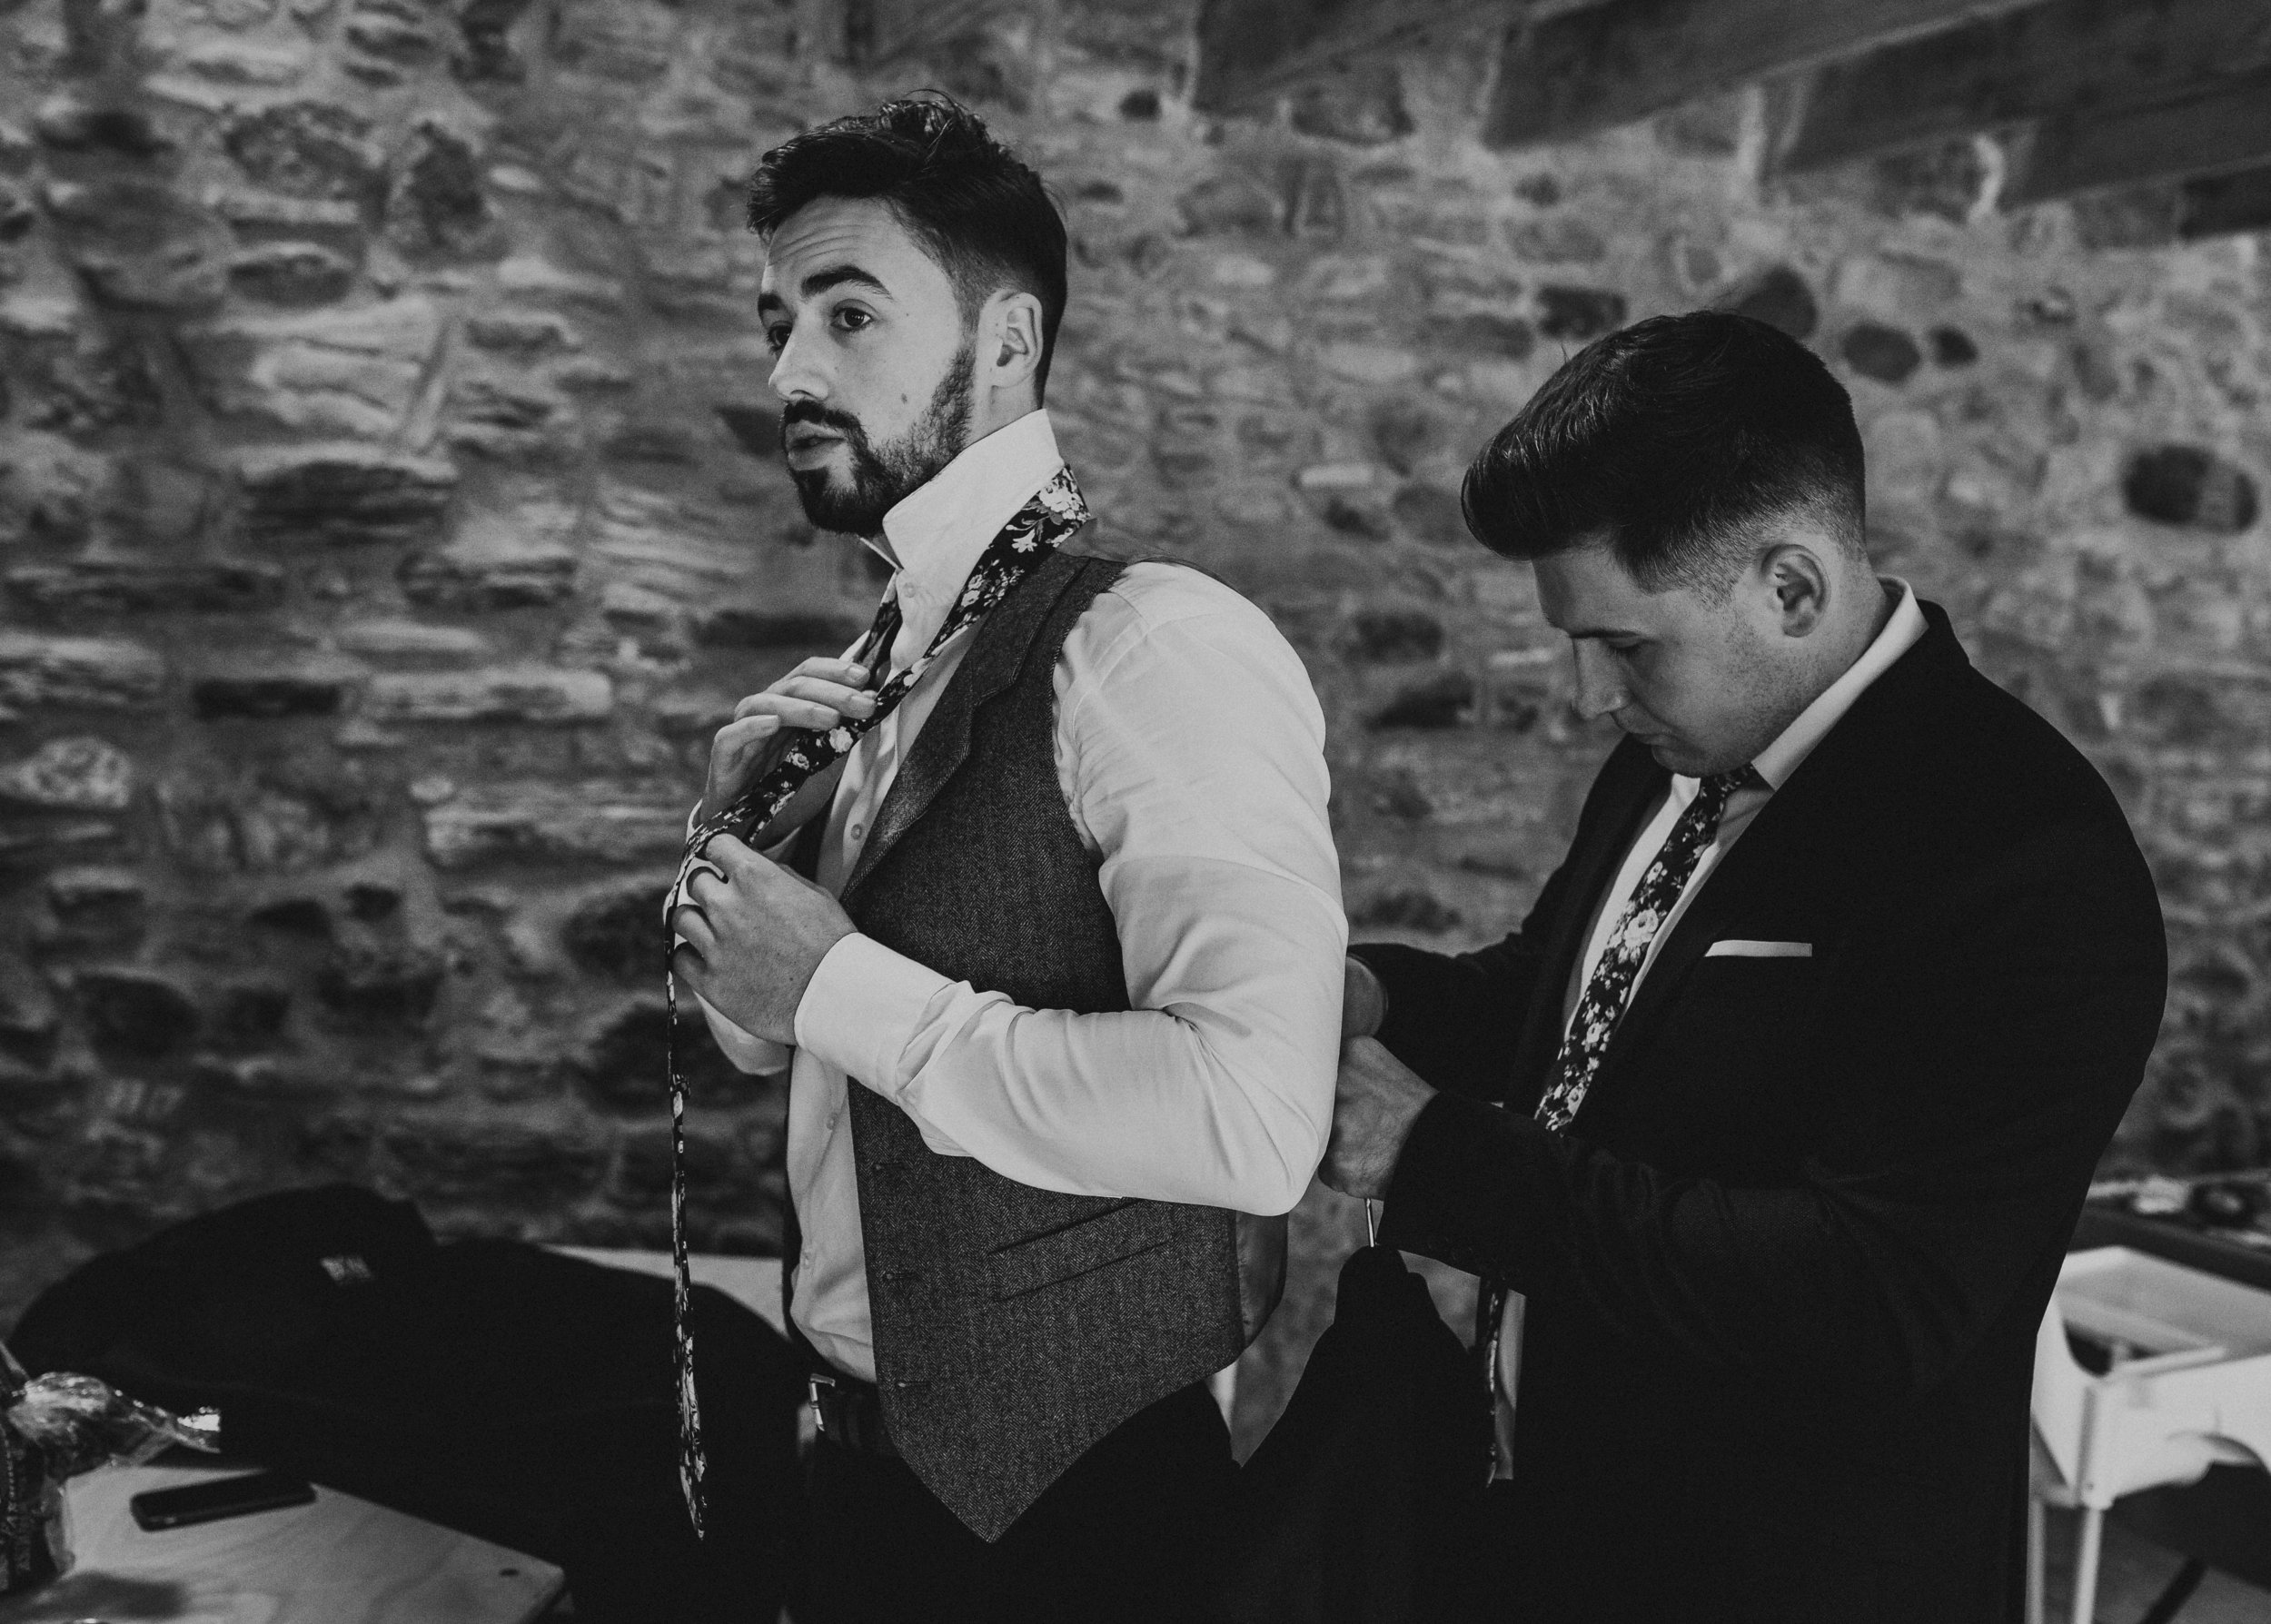 PJ_PHILLIPS_PHOTOGRAPHY_EDINBURGH_WEDDERBURN_BARNS_WEDDING_EDINBURGH_WEDDING_PHOTOGRAPHER_22.jpg